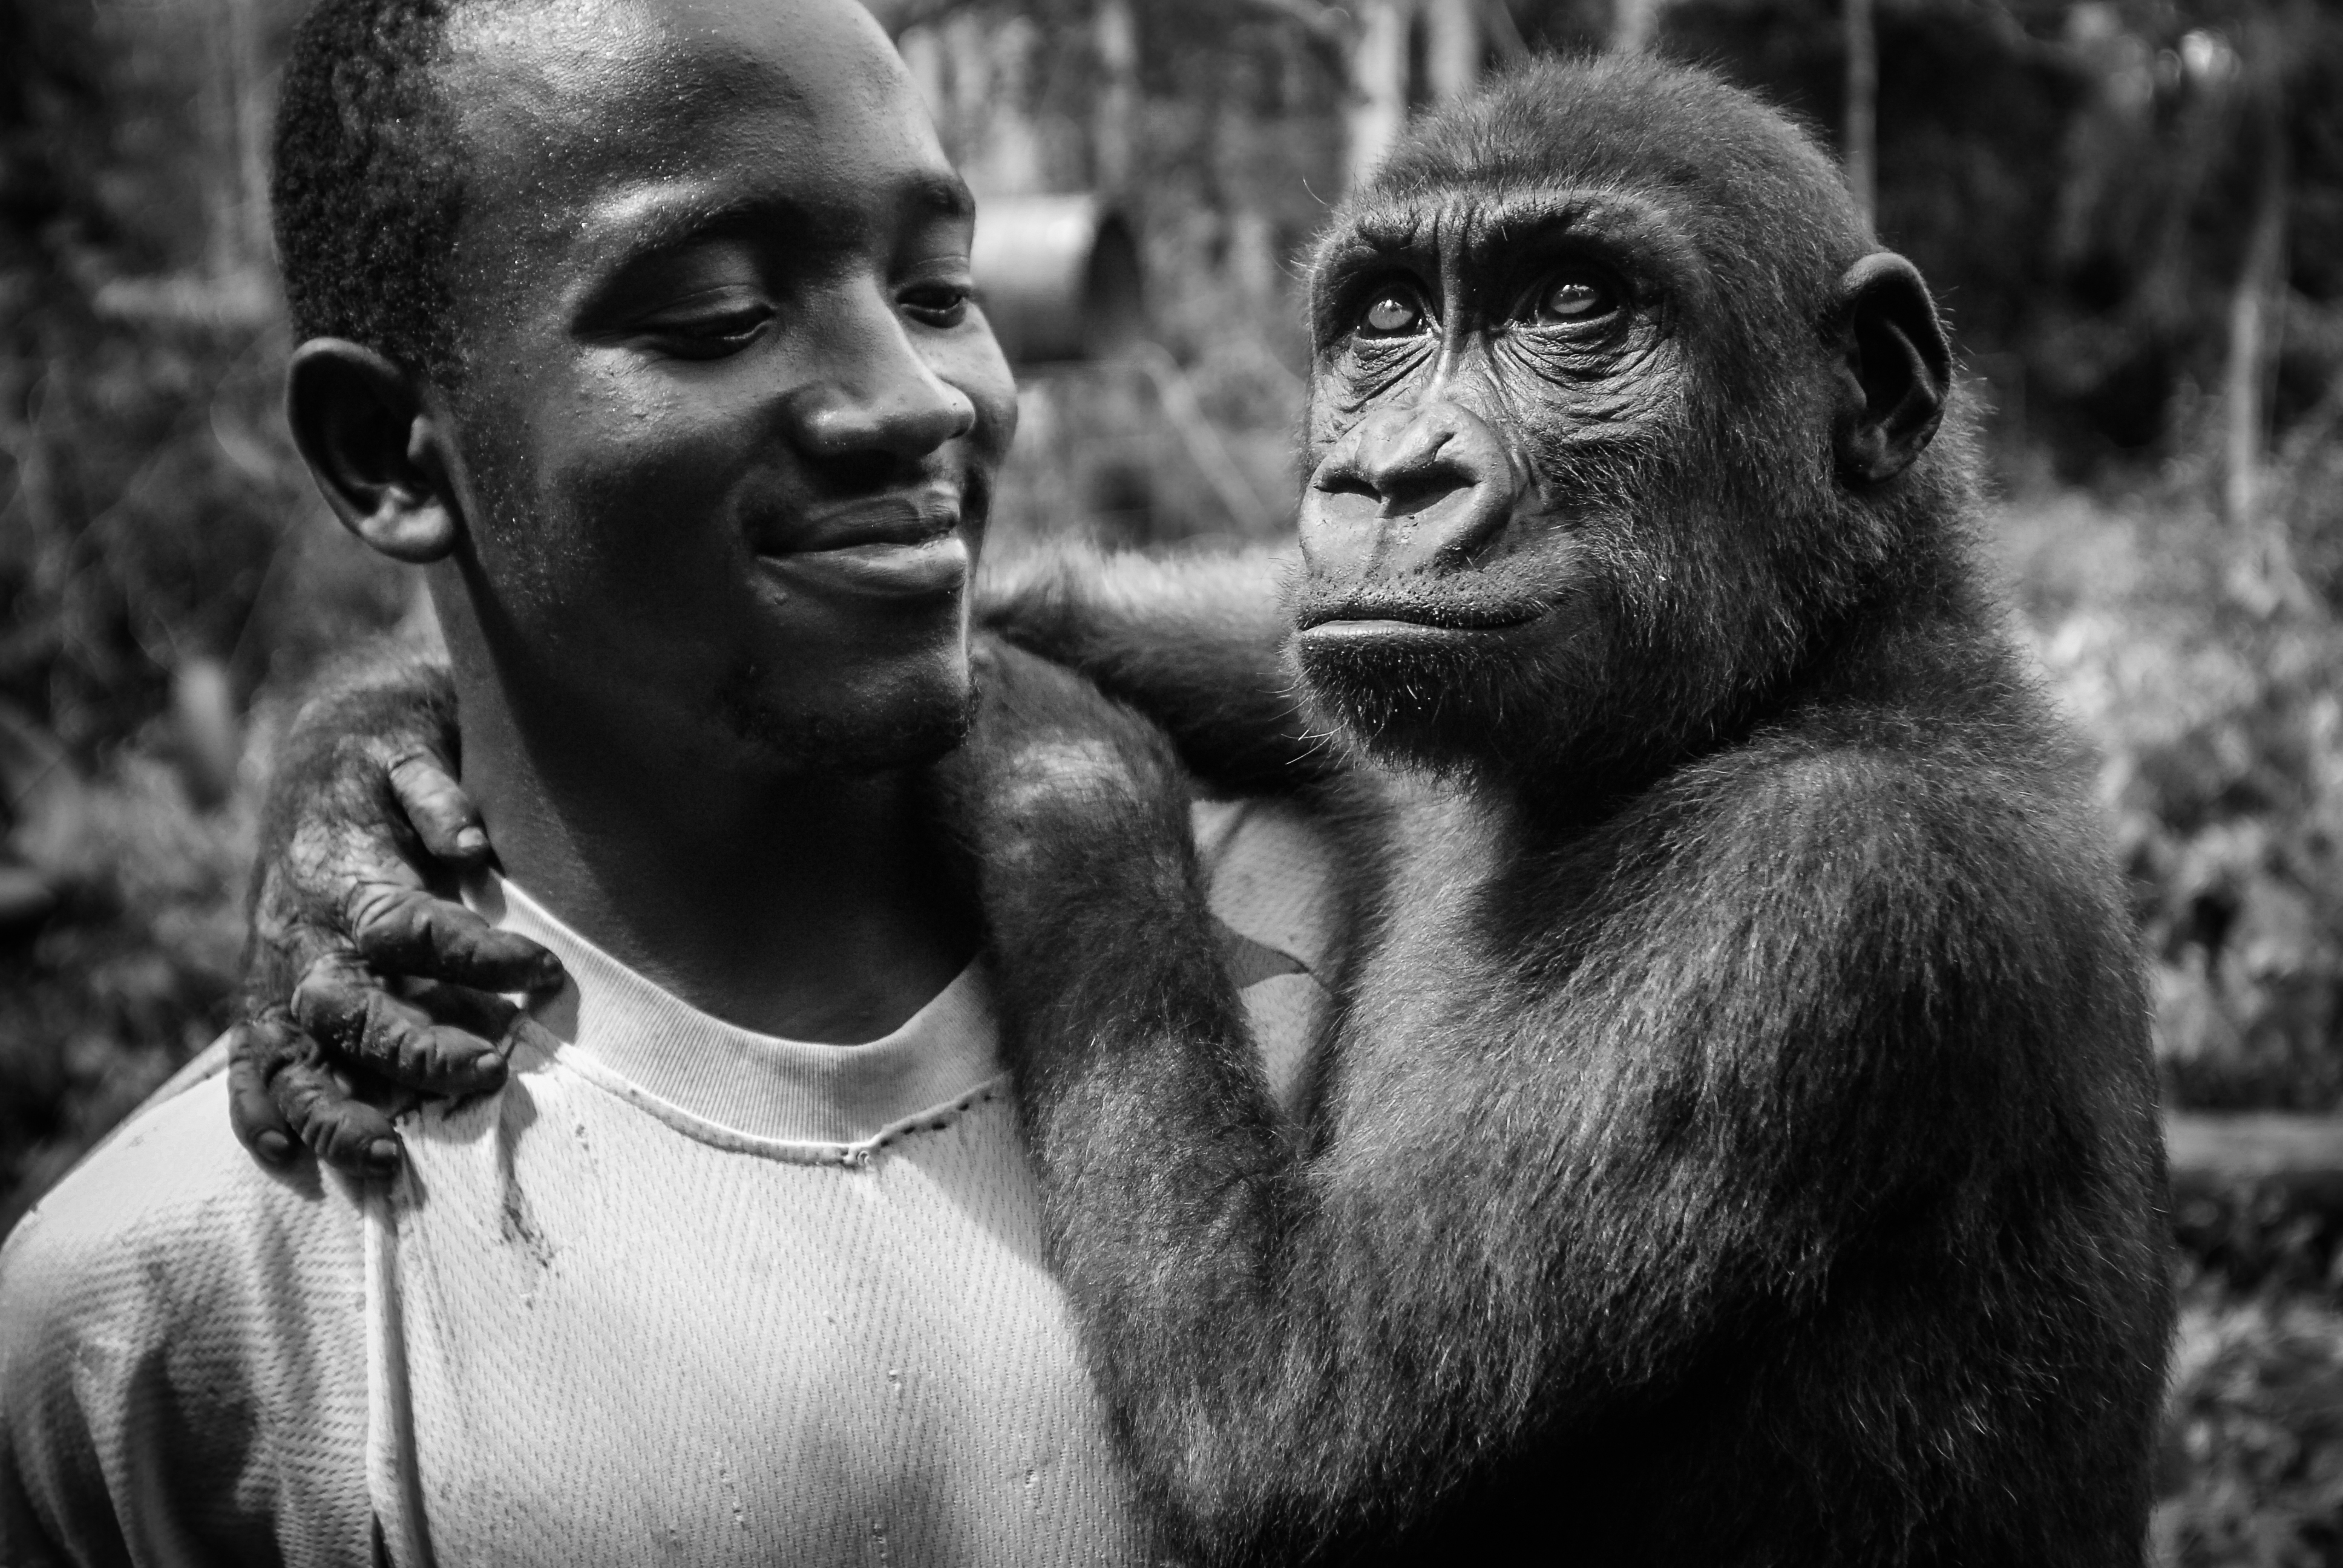 Thierry with a juvenile gorilla, rescued from the bushmeat trade. Cameroon, 2009.